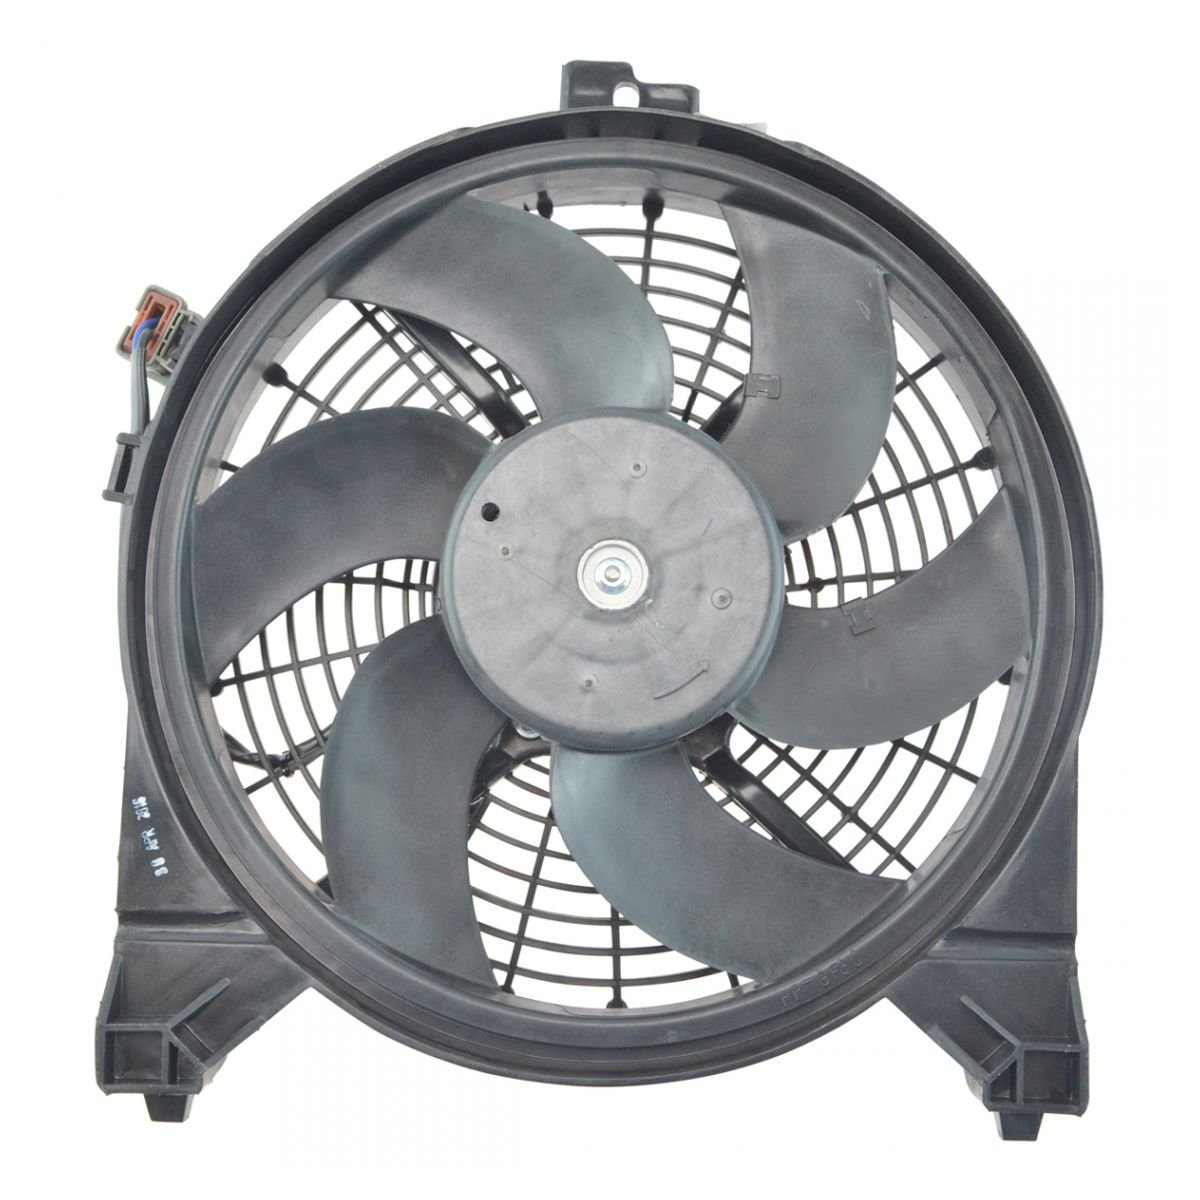 A/C AC Air Conditioning Condenser Cooling Fan Assembly for Armada Titan QX56